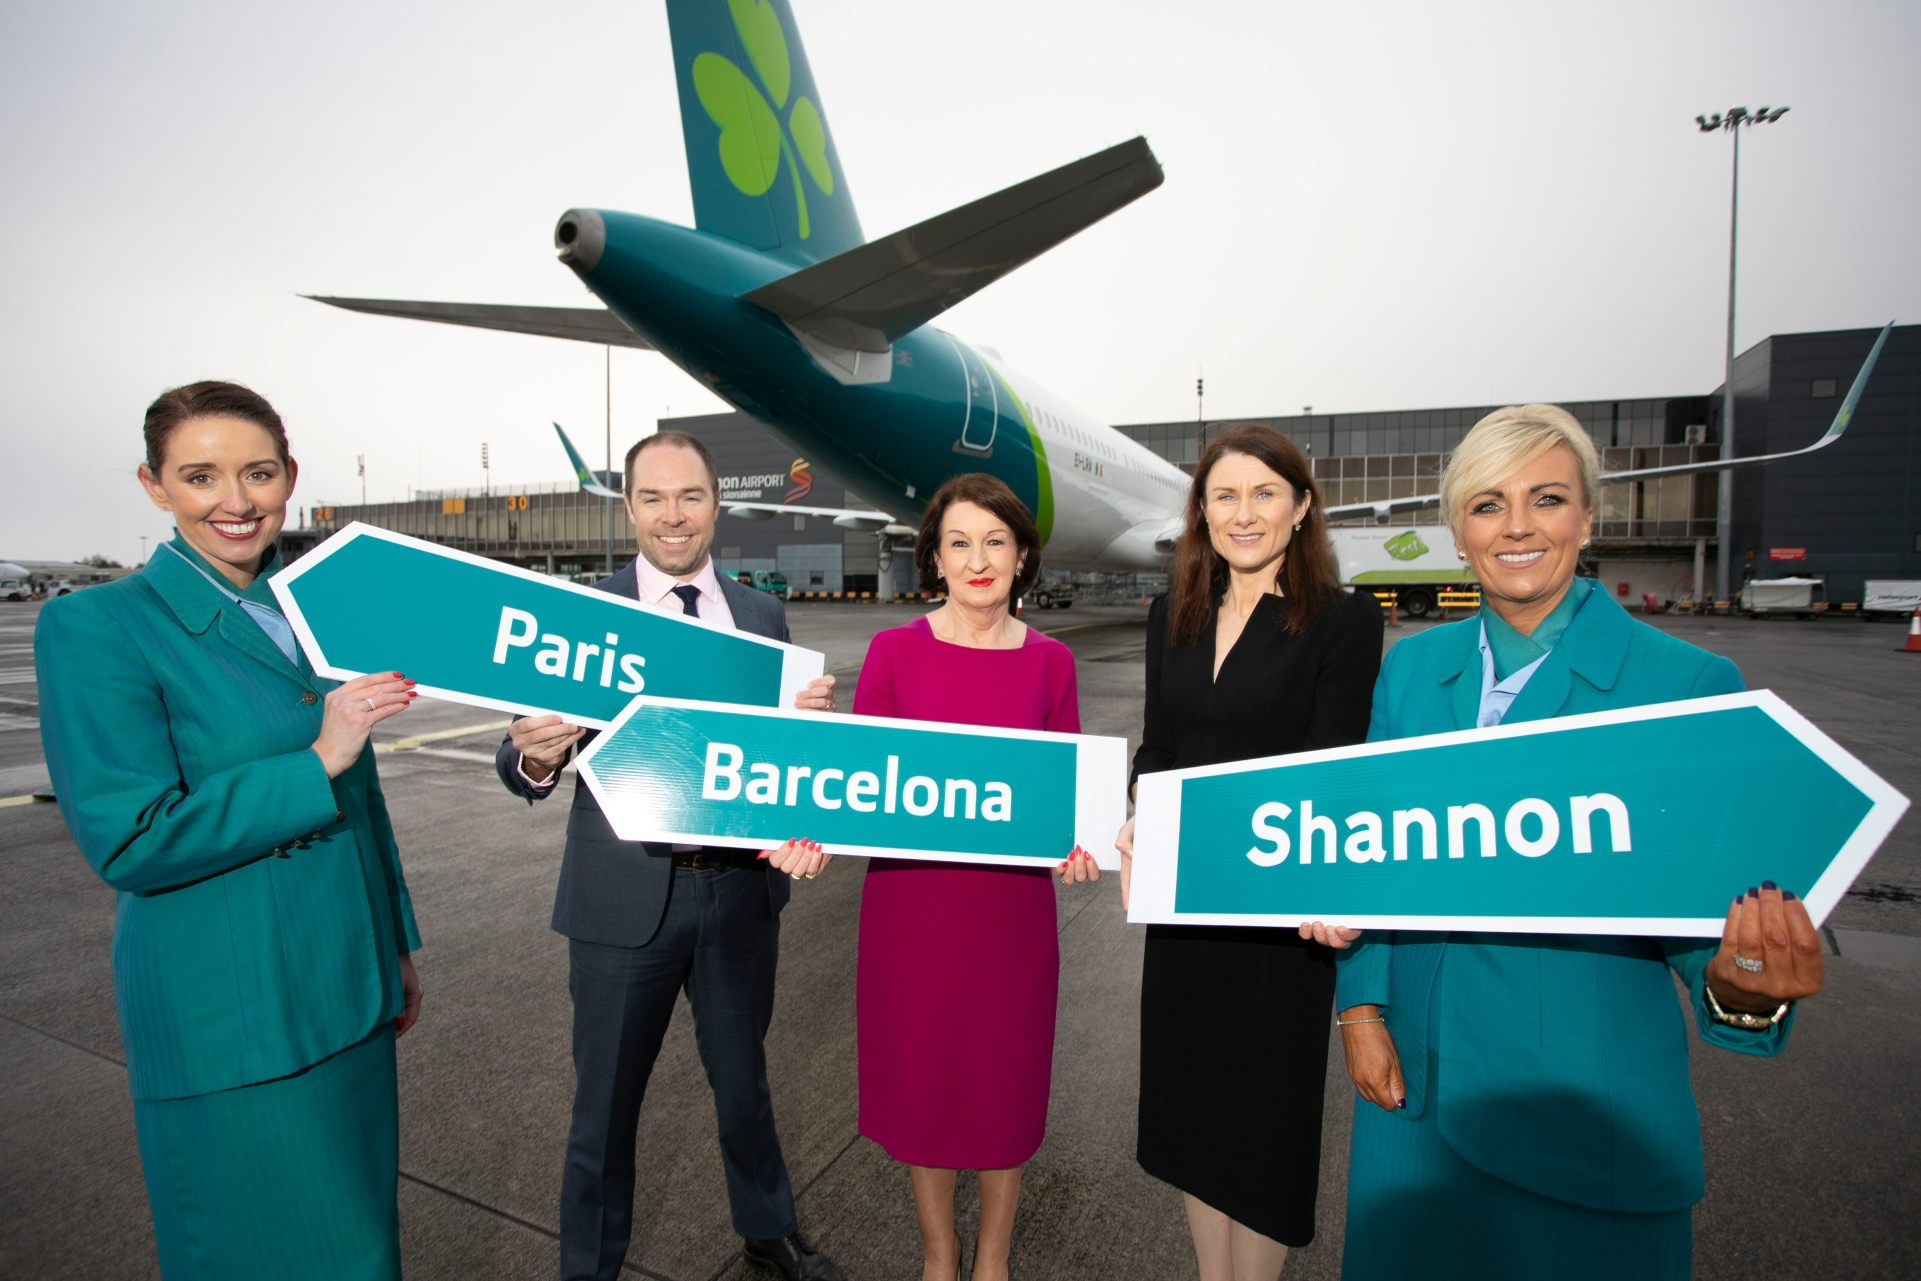 Shannon to Paris and Barcelona